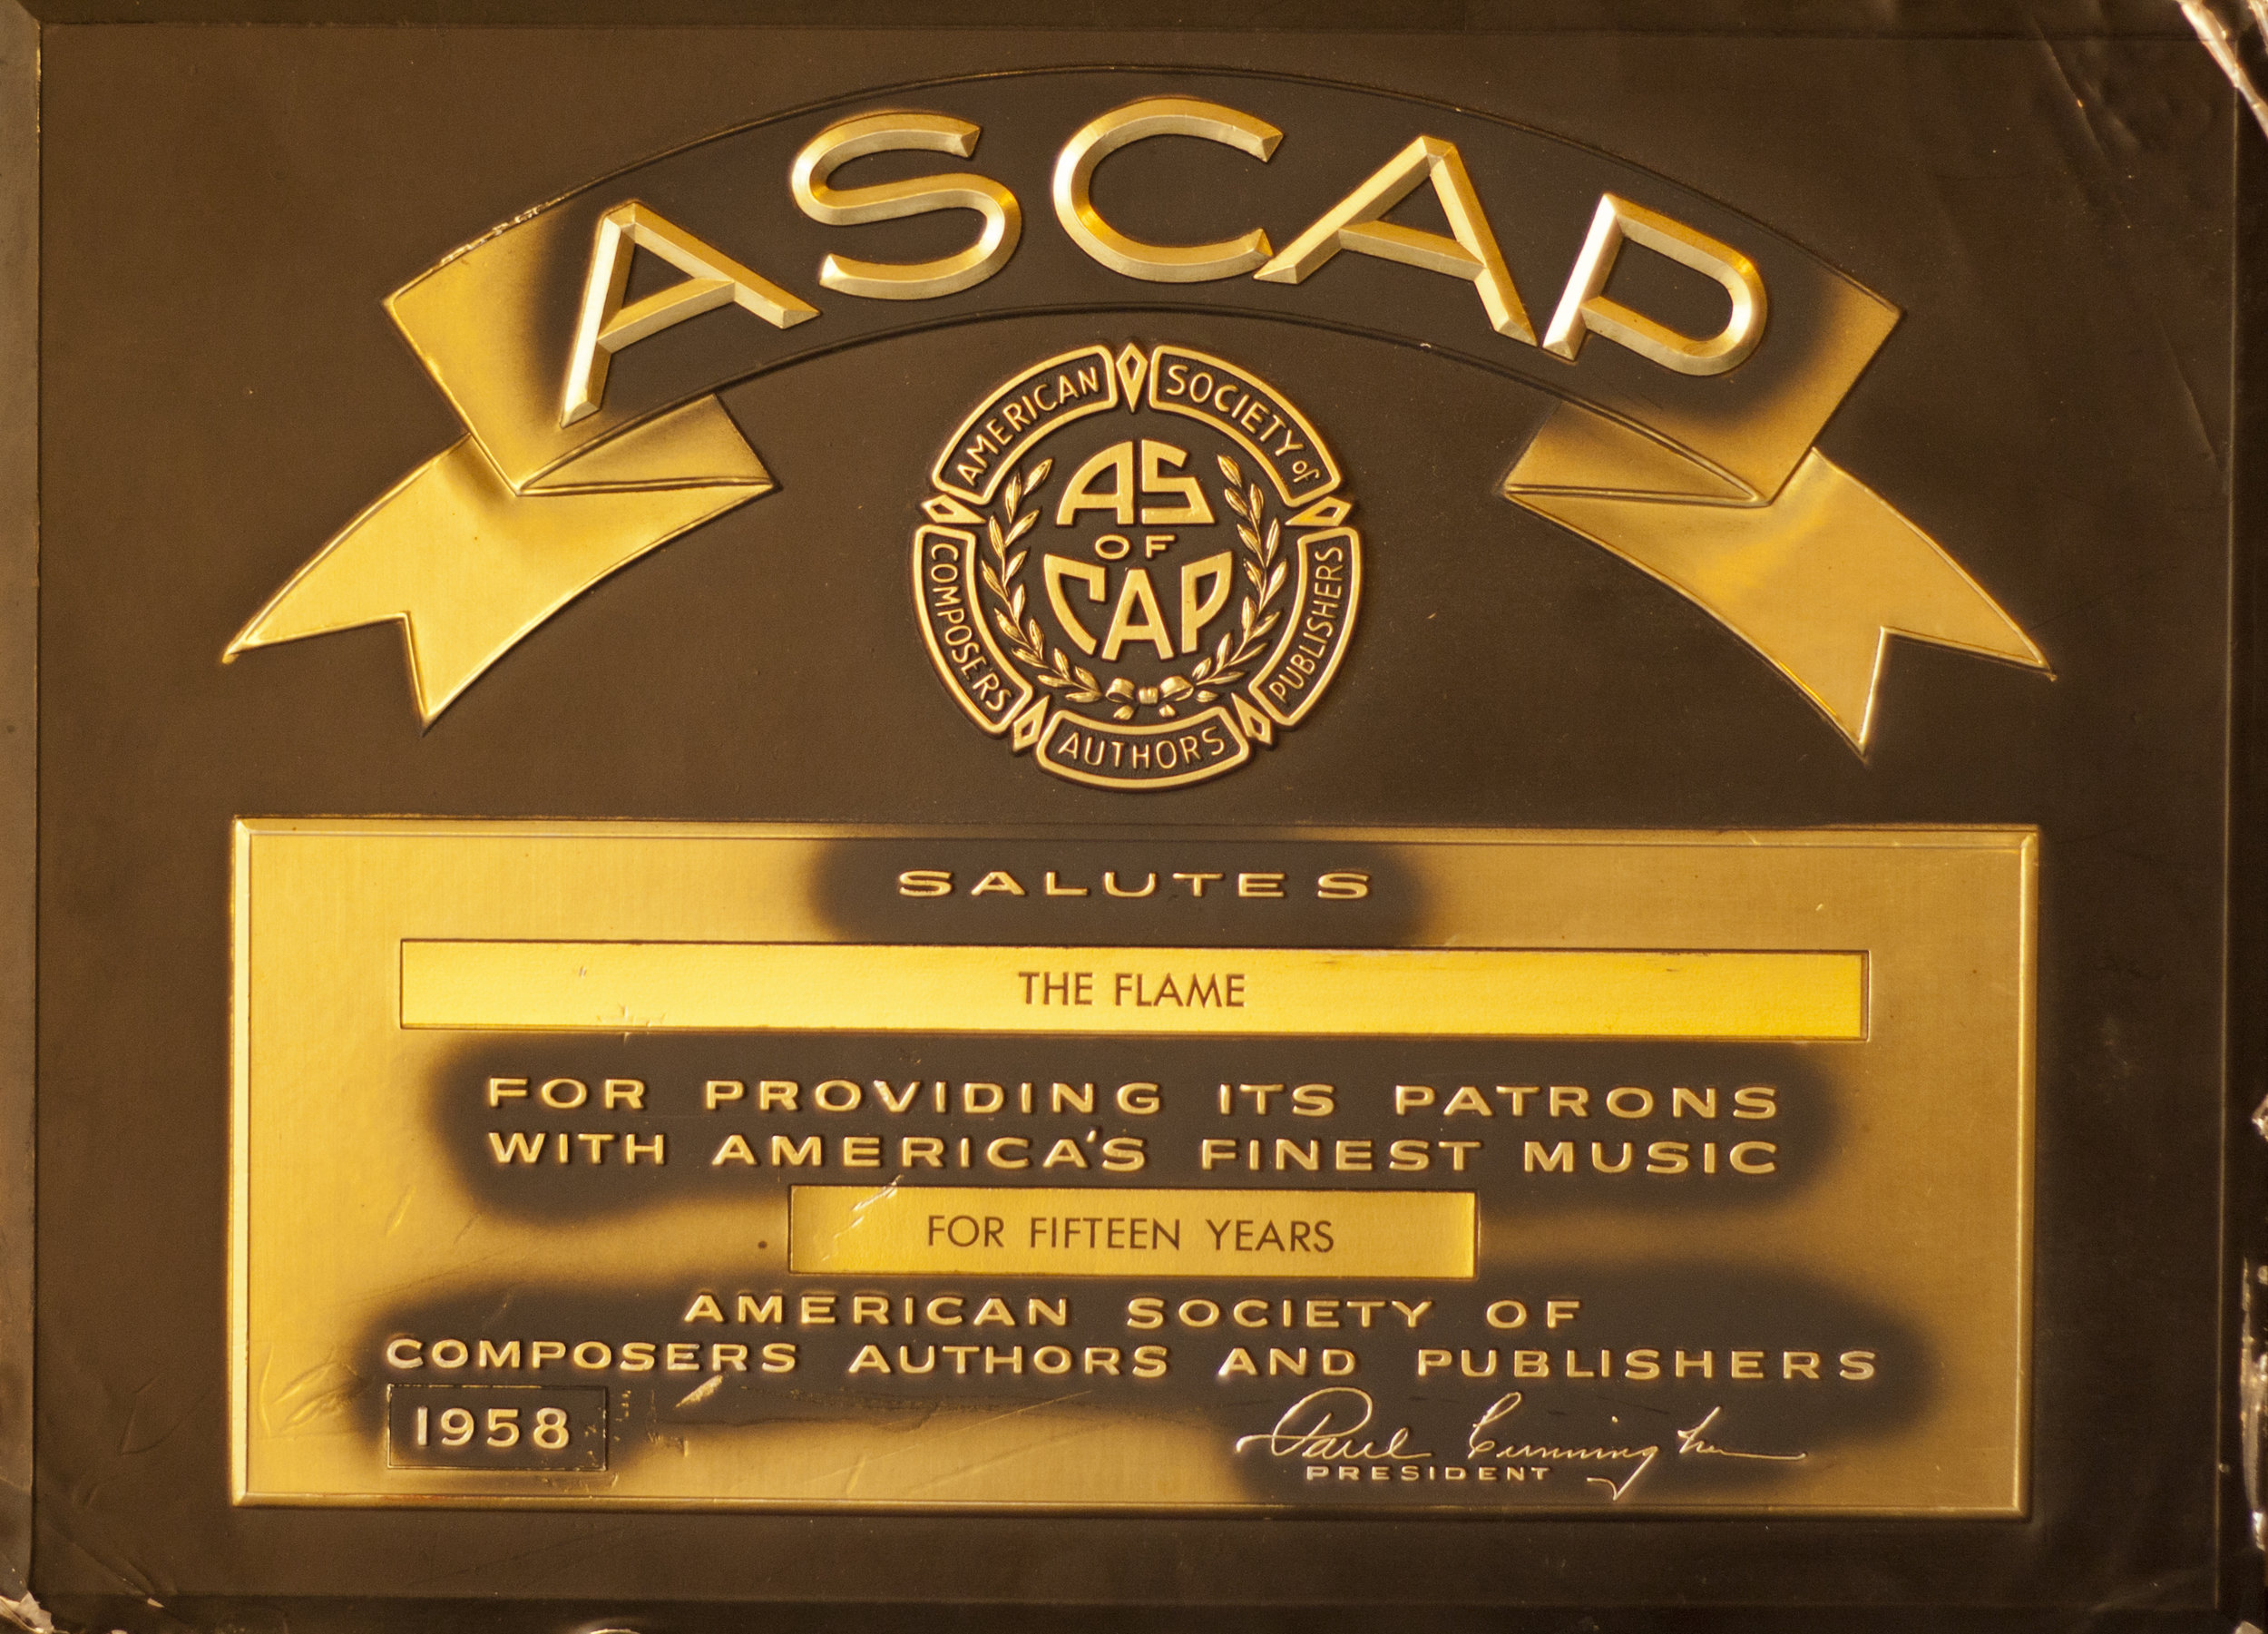 ASCAP SALUTES THE FLAME - 1958